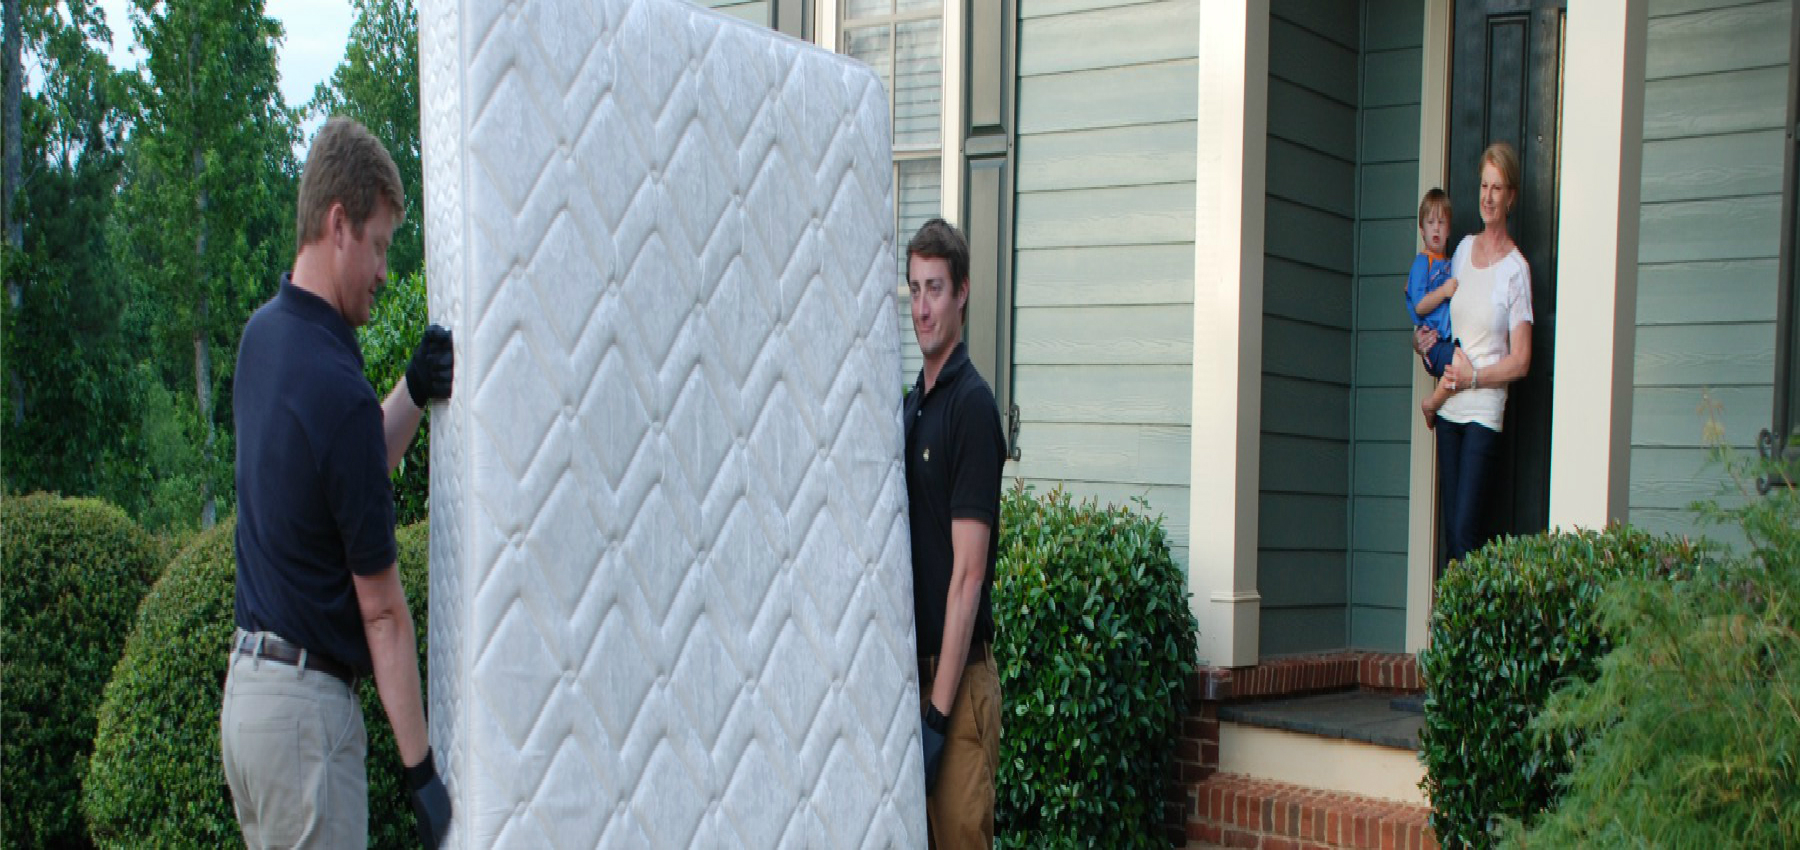 What You Should Know About Mattress Removal Service?